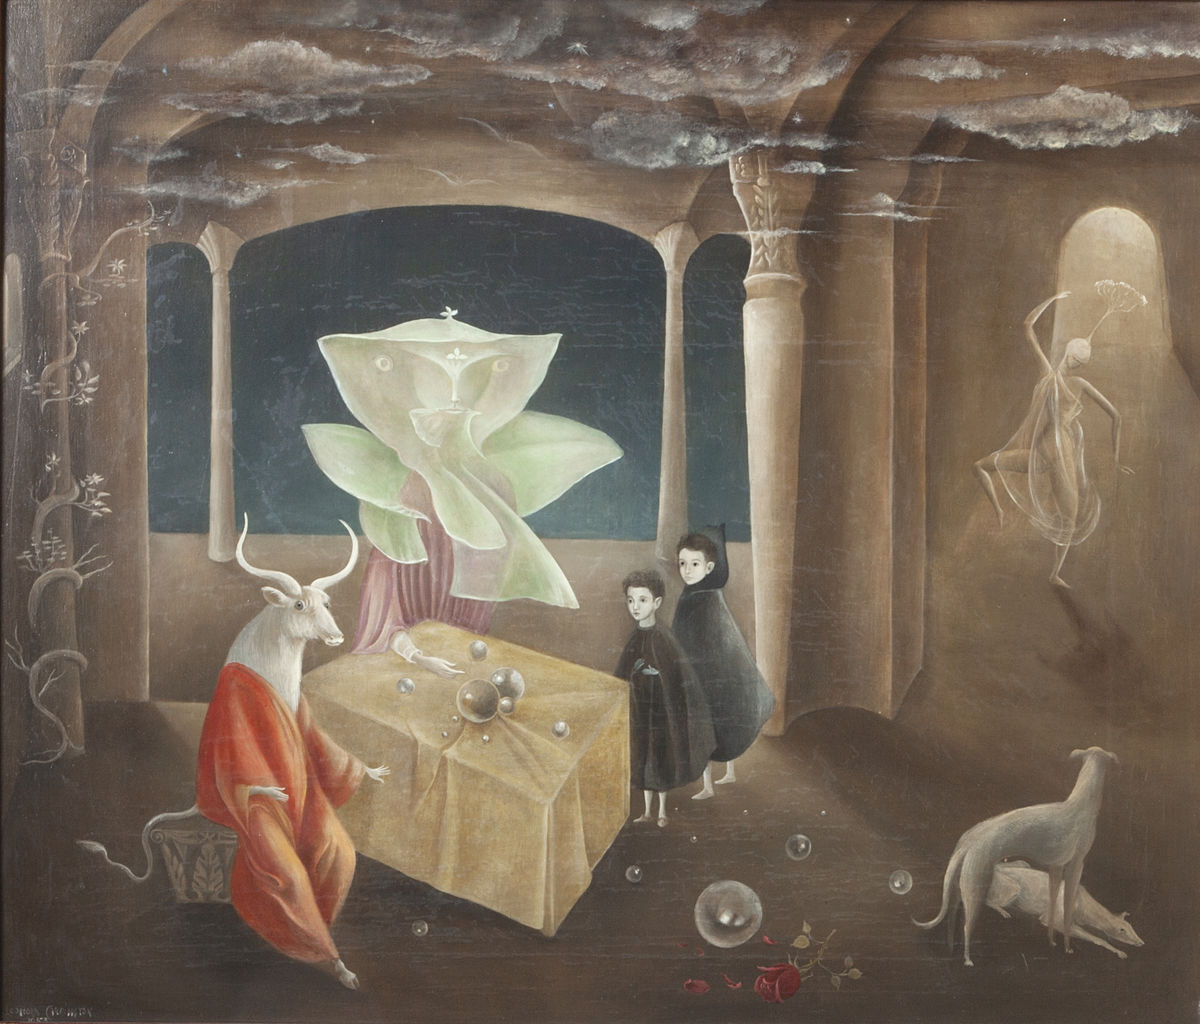 Leonora Carrington,  And Then We Saw the Daughter of the Minotaur!,  1953. © 2019 Estate of Leonora Carrington / Artists Rights Society (ARS), New York. Courtesy of Gallery Wendi Norris.